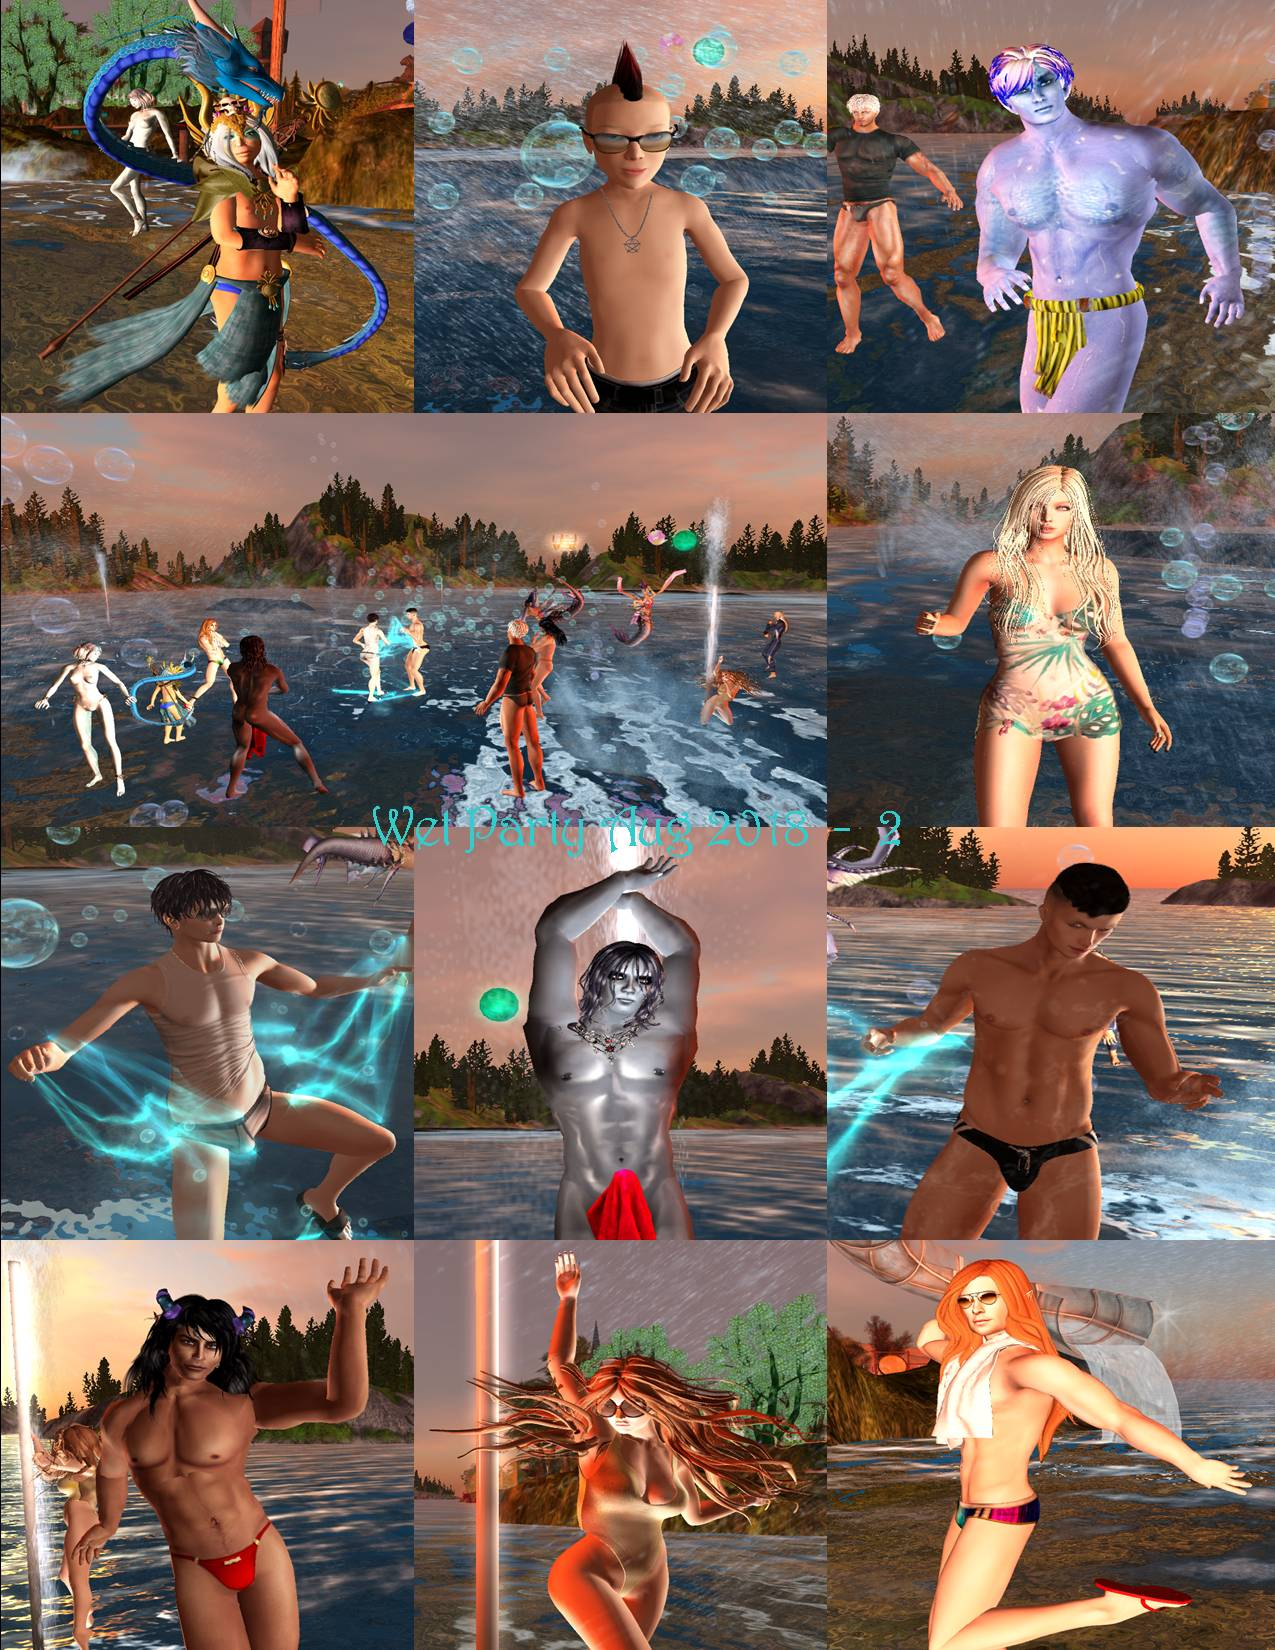 WET PARTY COLLAGE AUG 2018 - 2